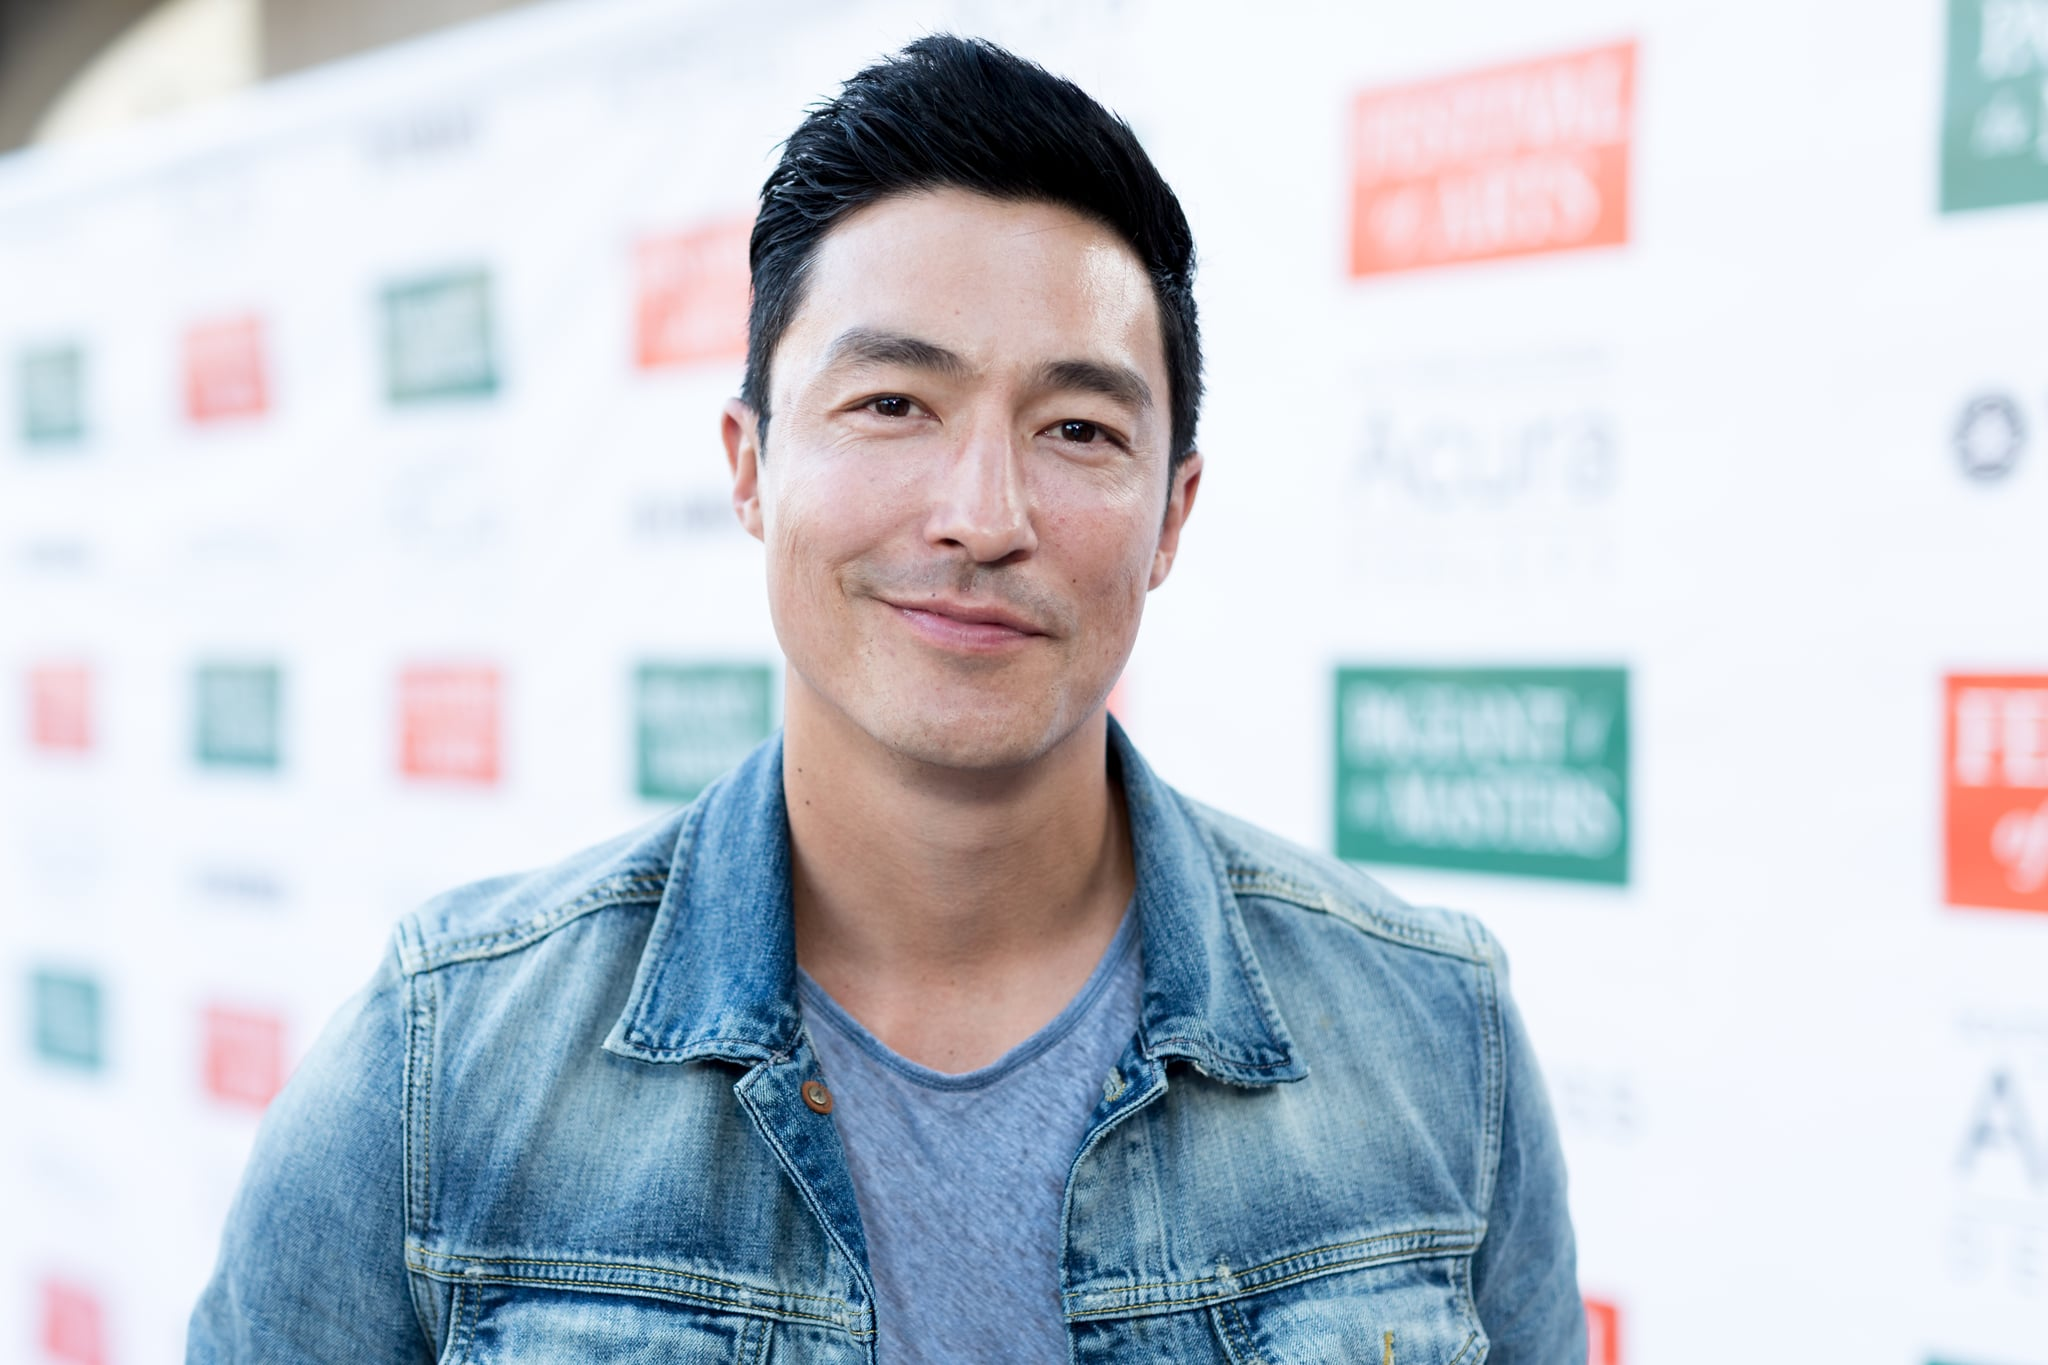 daniel henney biographydaniel henney wife, daniel henney личная жизнь, daniel henney 2019, daniel henney girlfriend, daniel henney gif, daniel henney father, daniel henney wheel of time, daniel henney filmography, daniel henney girl, daniel henney photos, daniel henney korea, daniel henney facebook, daniel henney peliculas, daniel henney instagram, daniel henney height, daniel henney dating, daniel henney young, daniel henney net worth, daniel henney matthew gray gubler, daniel henney biography